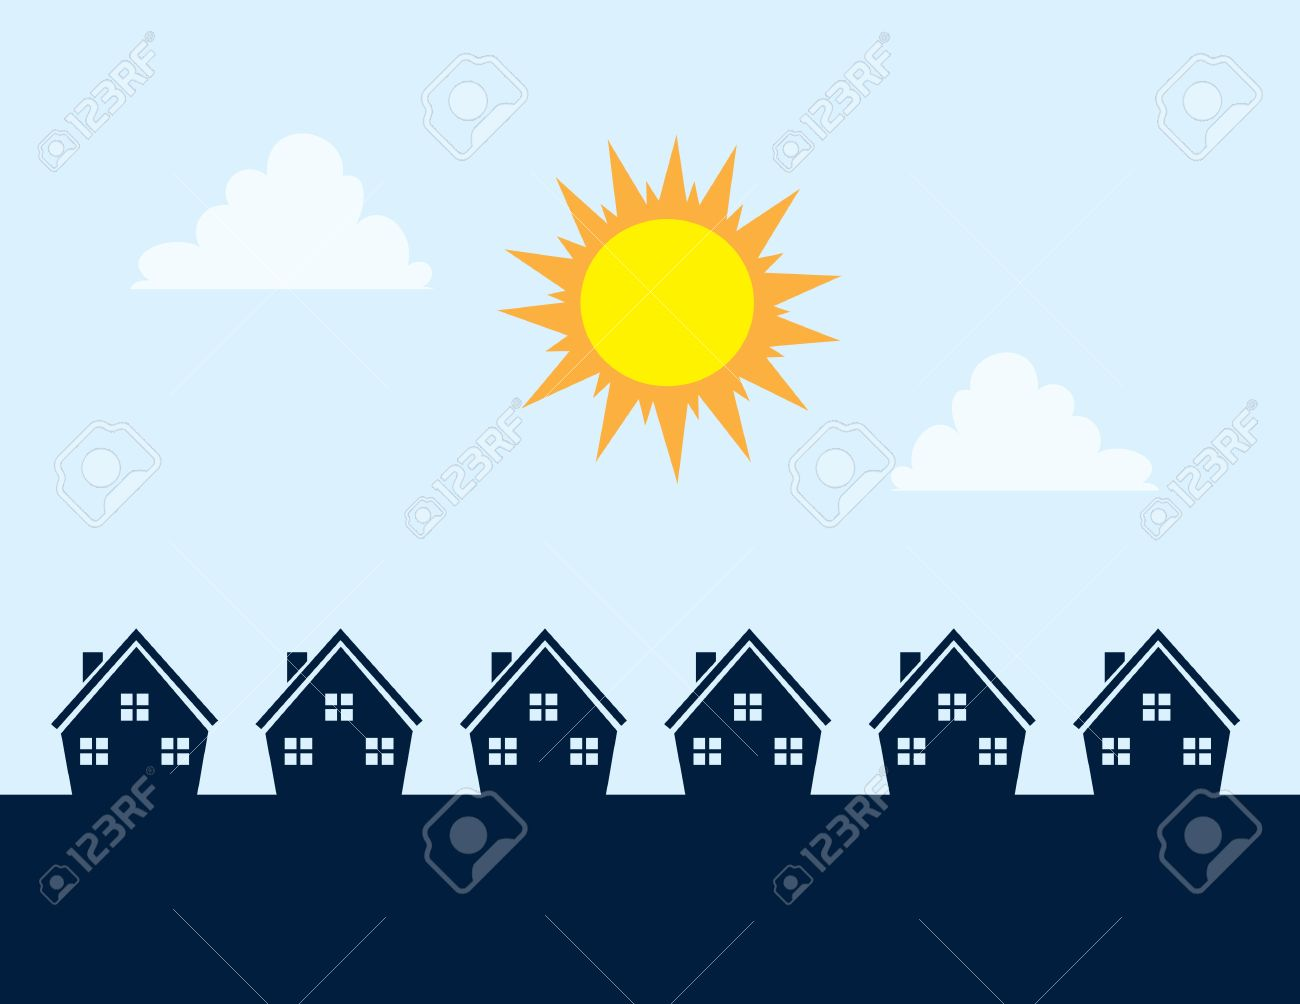 Houses Silhouettes During The Day With Sun Royalty Free Cliparts.